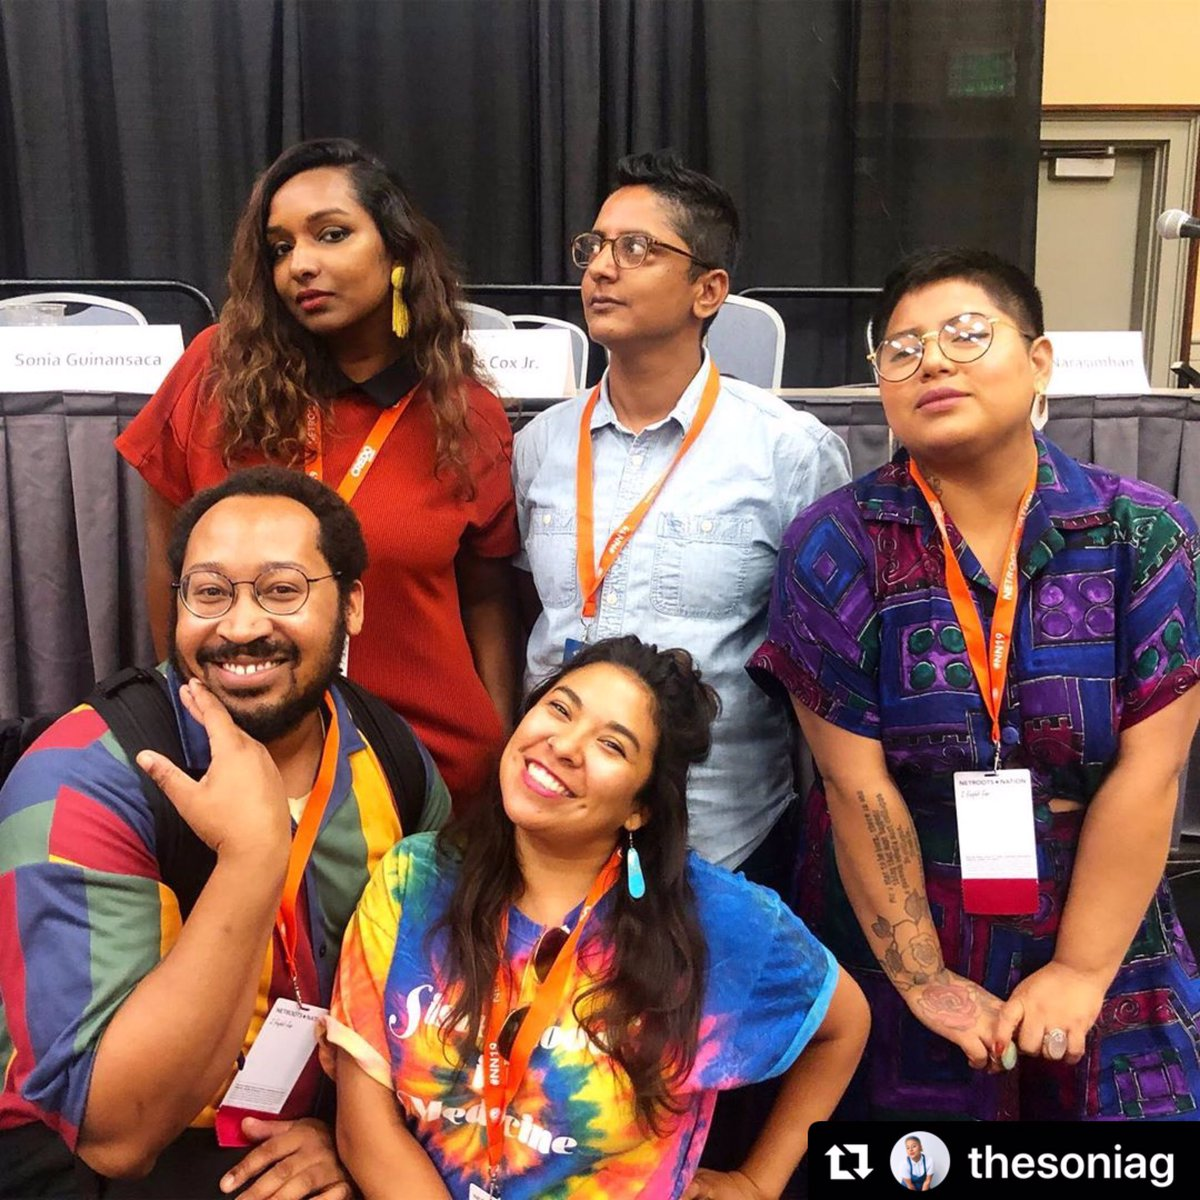 #tbt to some amazing climate justice organizing work at #nn19 this past summer 🔥 Netroots organizers are ecstatic over the energy brought to the these spaces. We strive to be better every year and are only as powerful and impactful as all of you. Thanks for #killinit ❤️🙏🔥